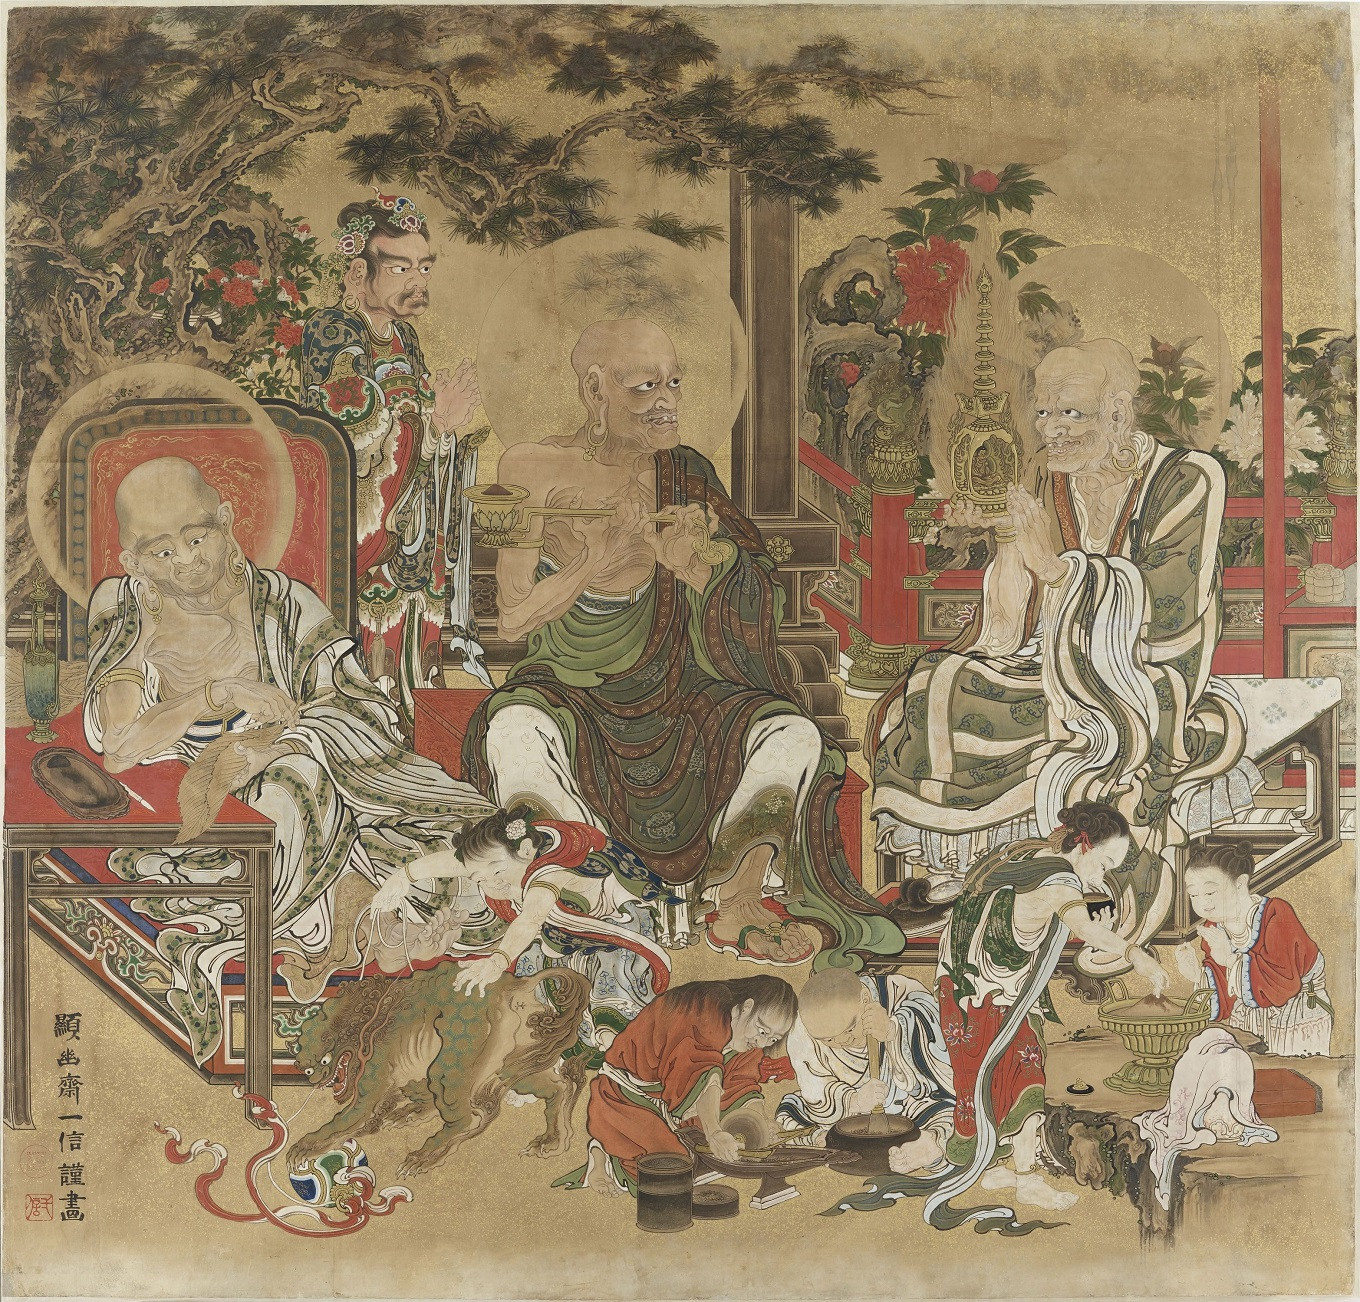 16 Arahats Daily Life depicts the first disciples of Buddha. This is one of four panels, attributed to Kanu Kazunobo (1816-1863), Japan of the Edo Period, acquired in 1876, painted on paper, with ink, powder colours and particles of gold. Height of each panel 165 cm and length 170cm.